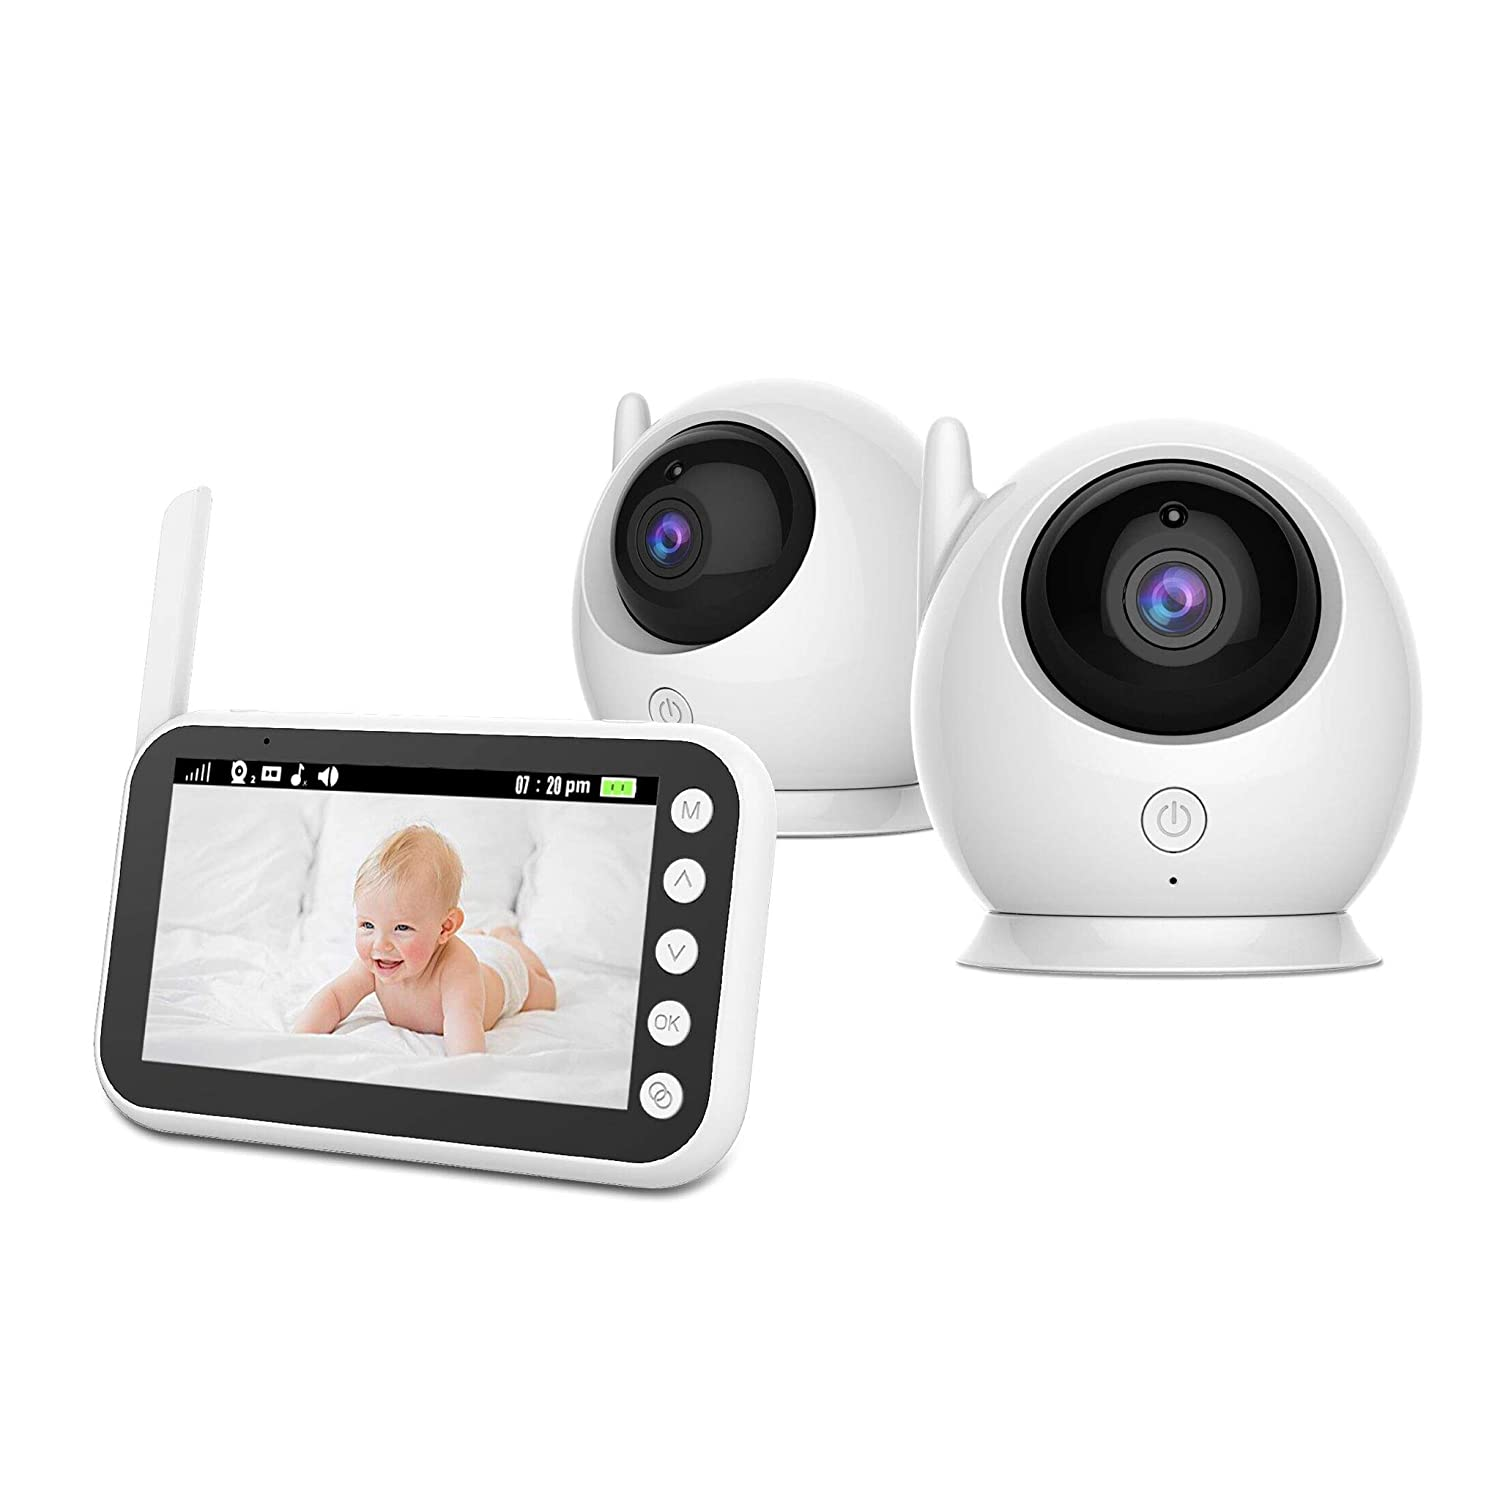 Baby Monitor Wireless Video with Two Cameras, 4.3 Large LCD Screen, Night Vision Camera, Video Recording and Two Way Audio System